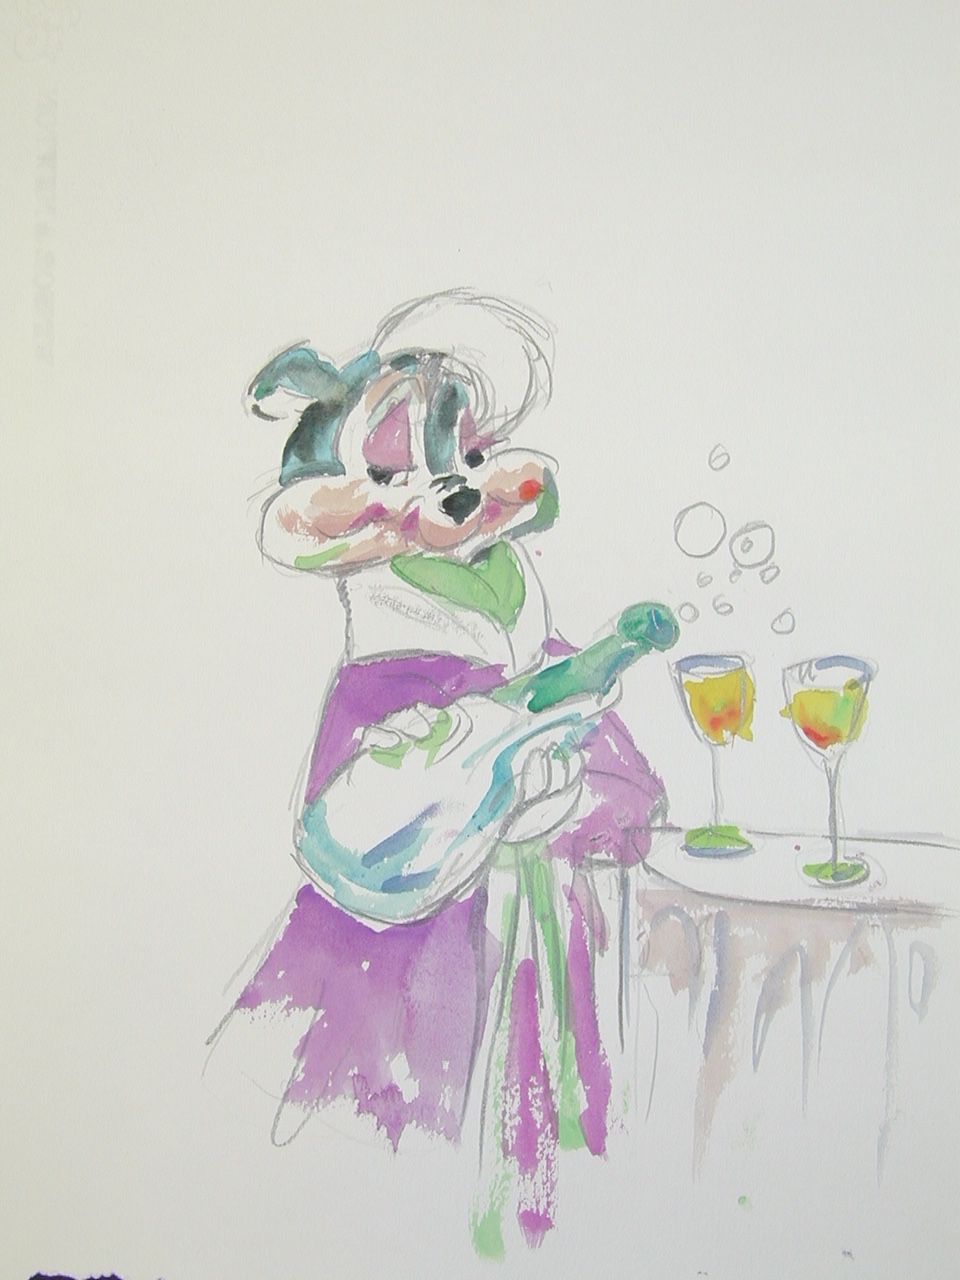 Chuck Jones   Pepe LePew   Watercolor on Arches Paper  14 x 11 inches   INQUIRE